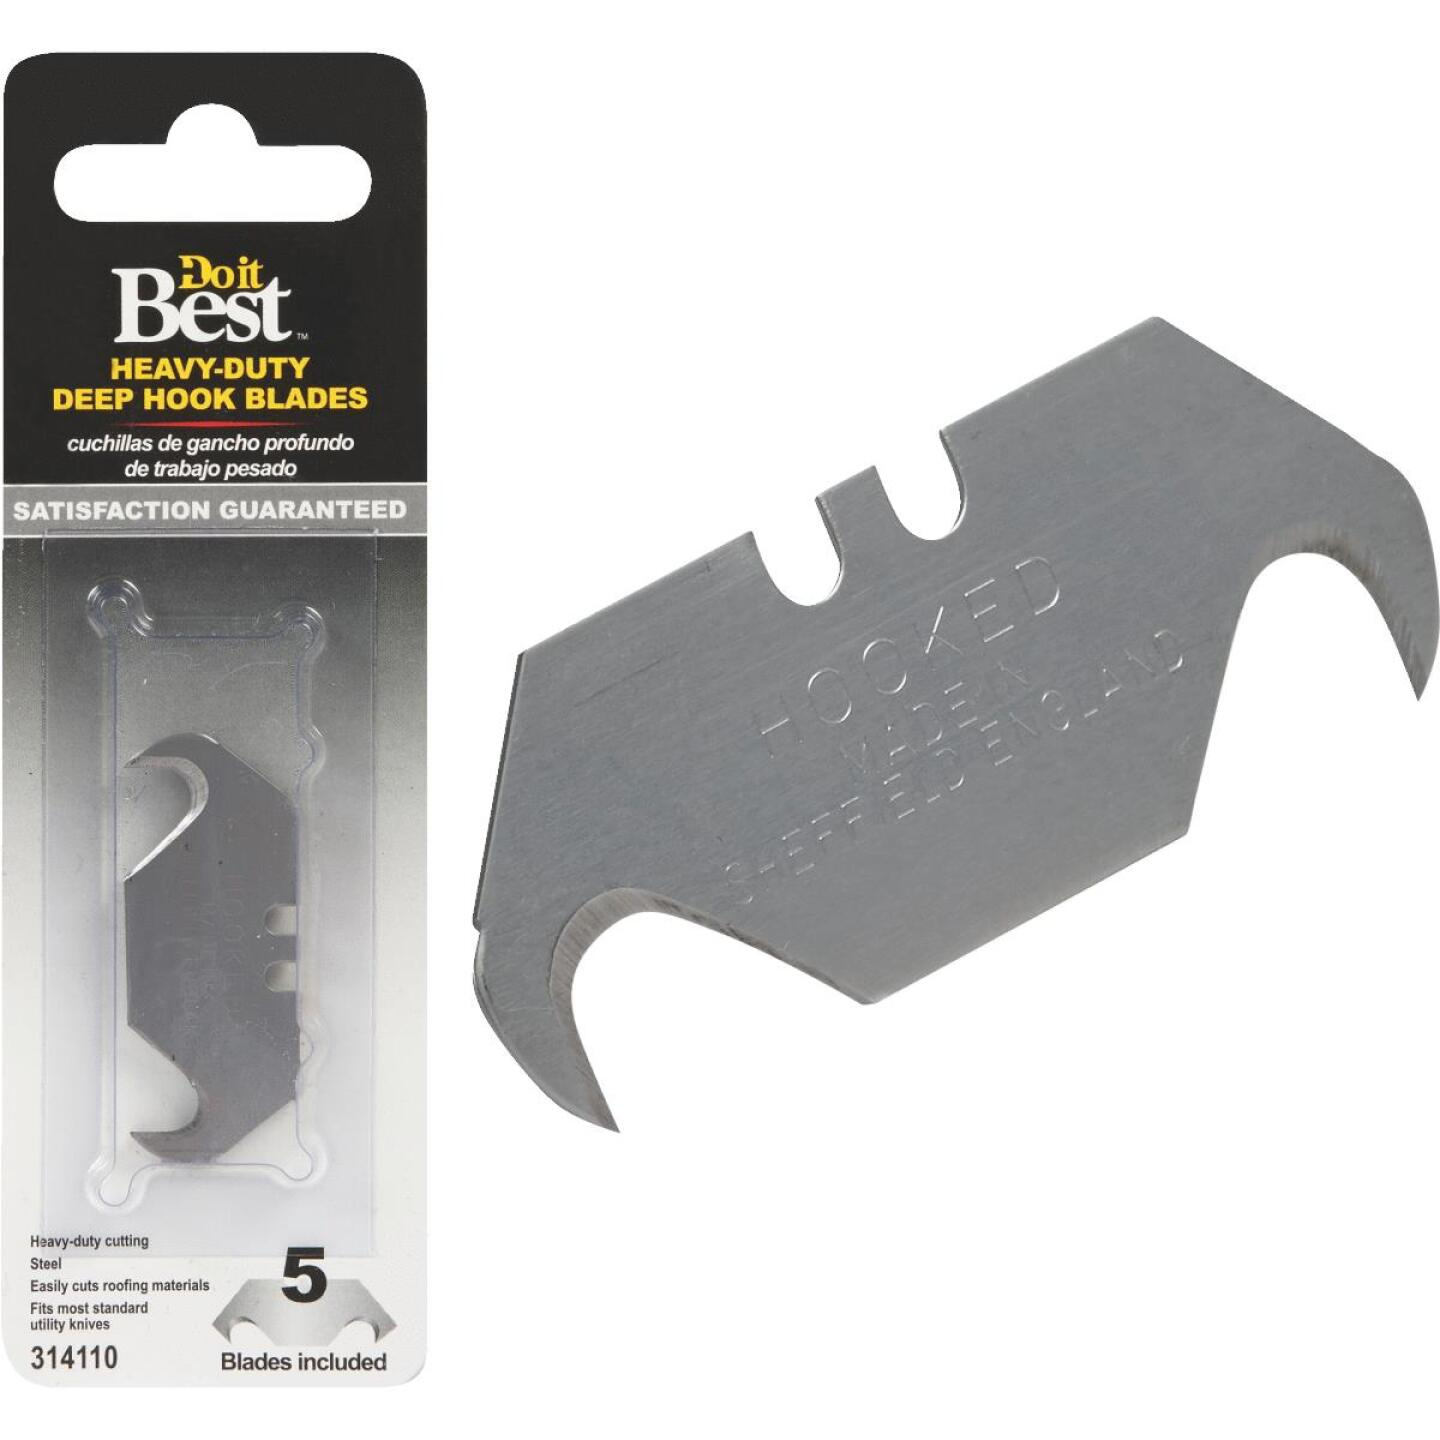 Do it Best Heavy-Duty 2-Ended Hook 2-1/3 In. Utility Knife Blade (5-Pack) Image 1